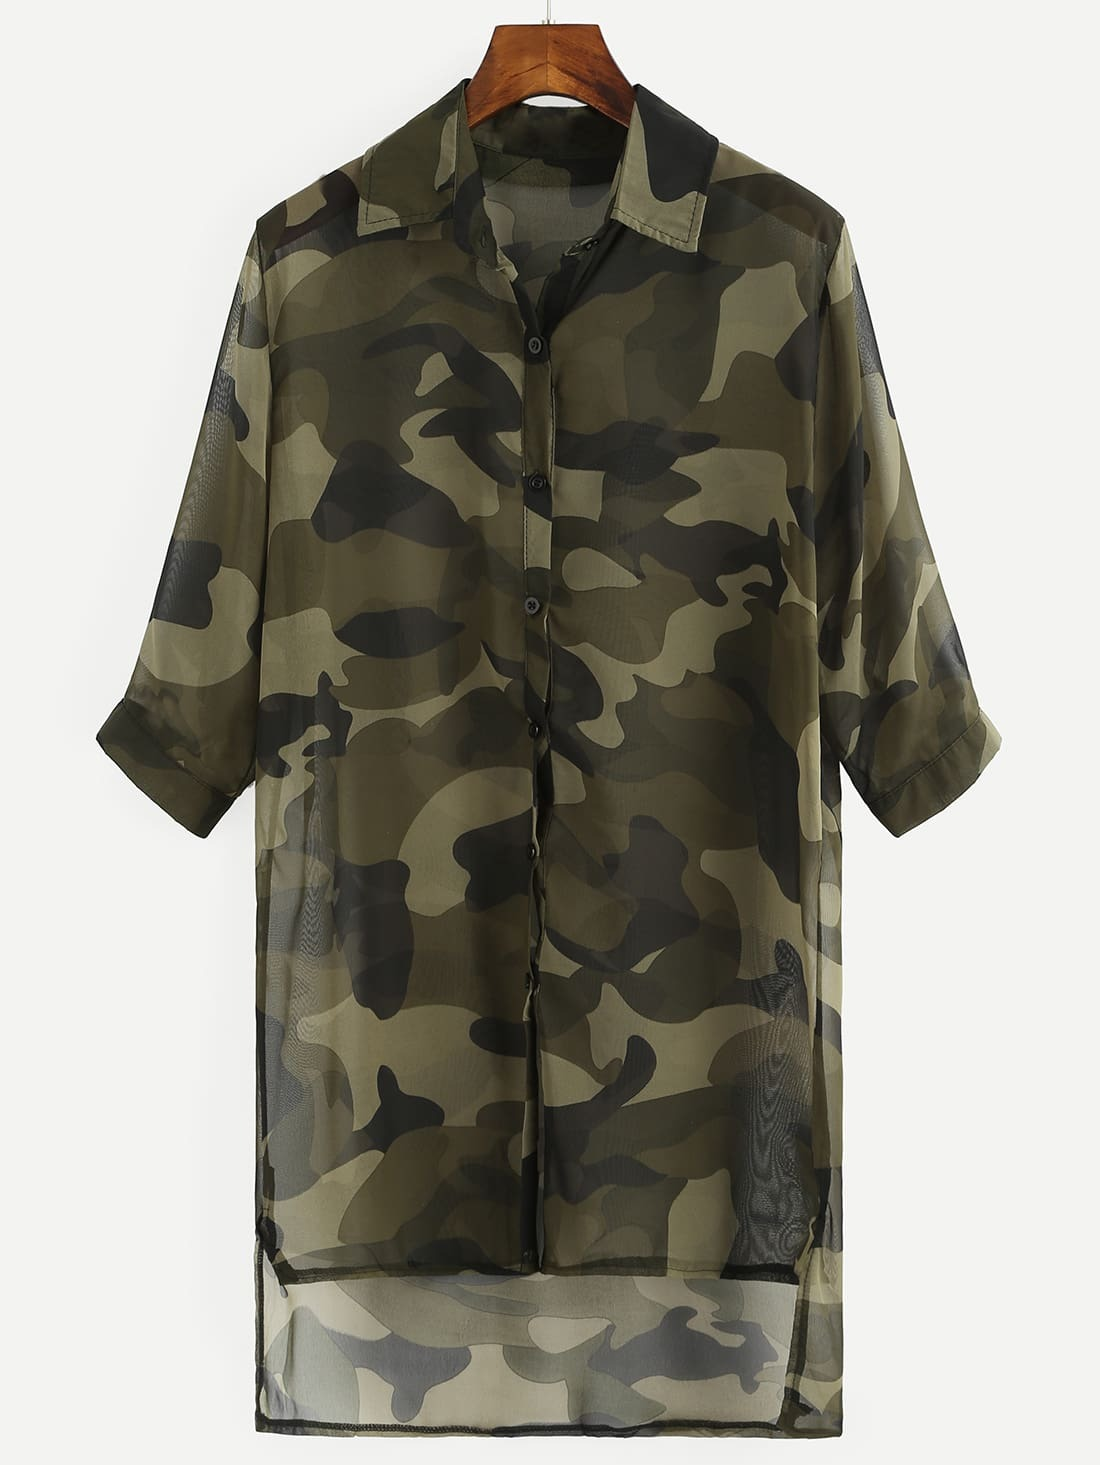 Olive Green Camo Print High-Low Chiffon BlouseOlive Green Camo Print High-Low Chiffon Blouse<br><br>color: Green<br>size: one-size